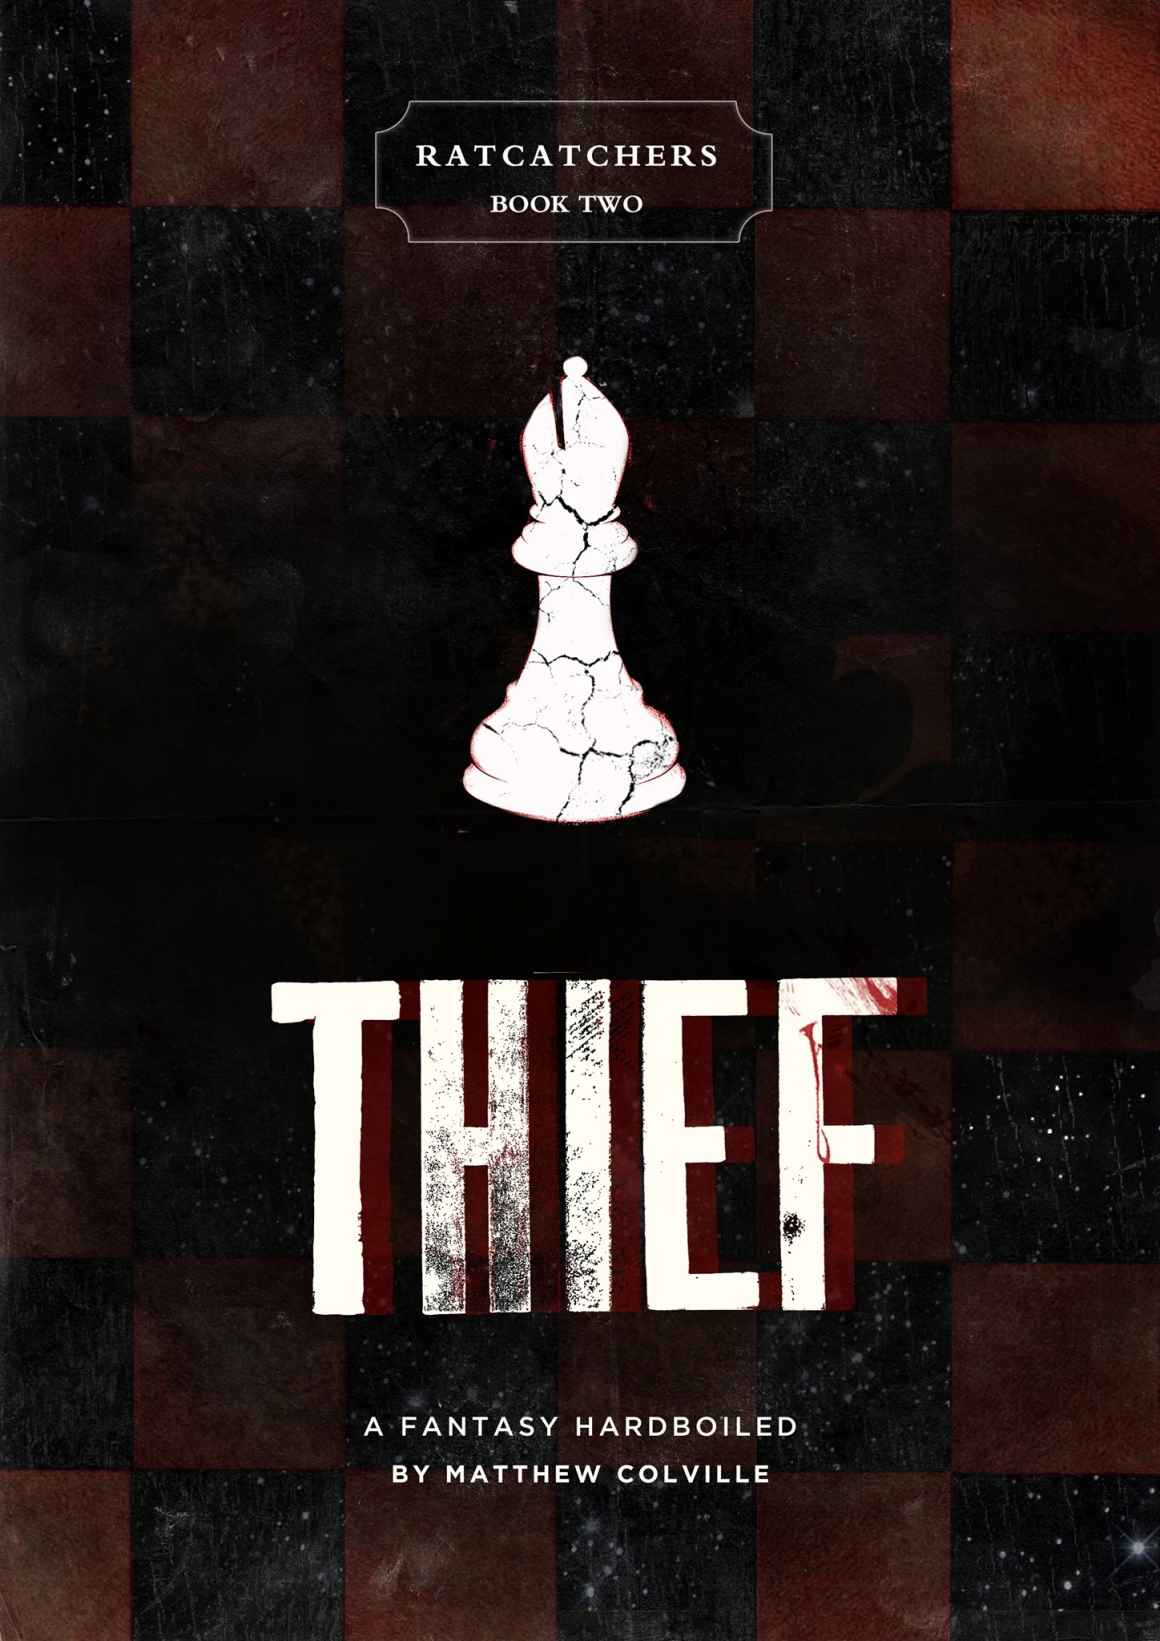 Thief: A Fantasy Hardboiled by Matthew Colville (Ratcatchers Book #2)